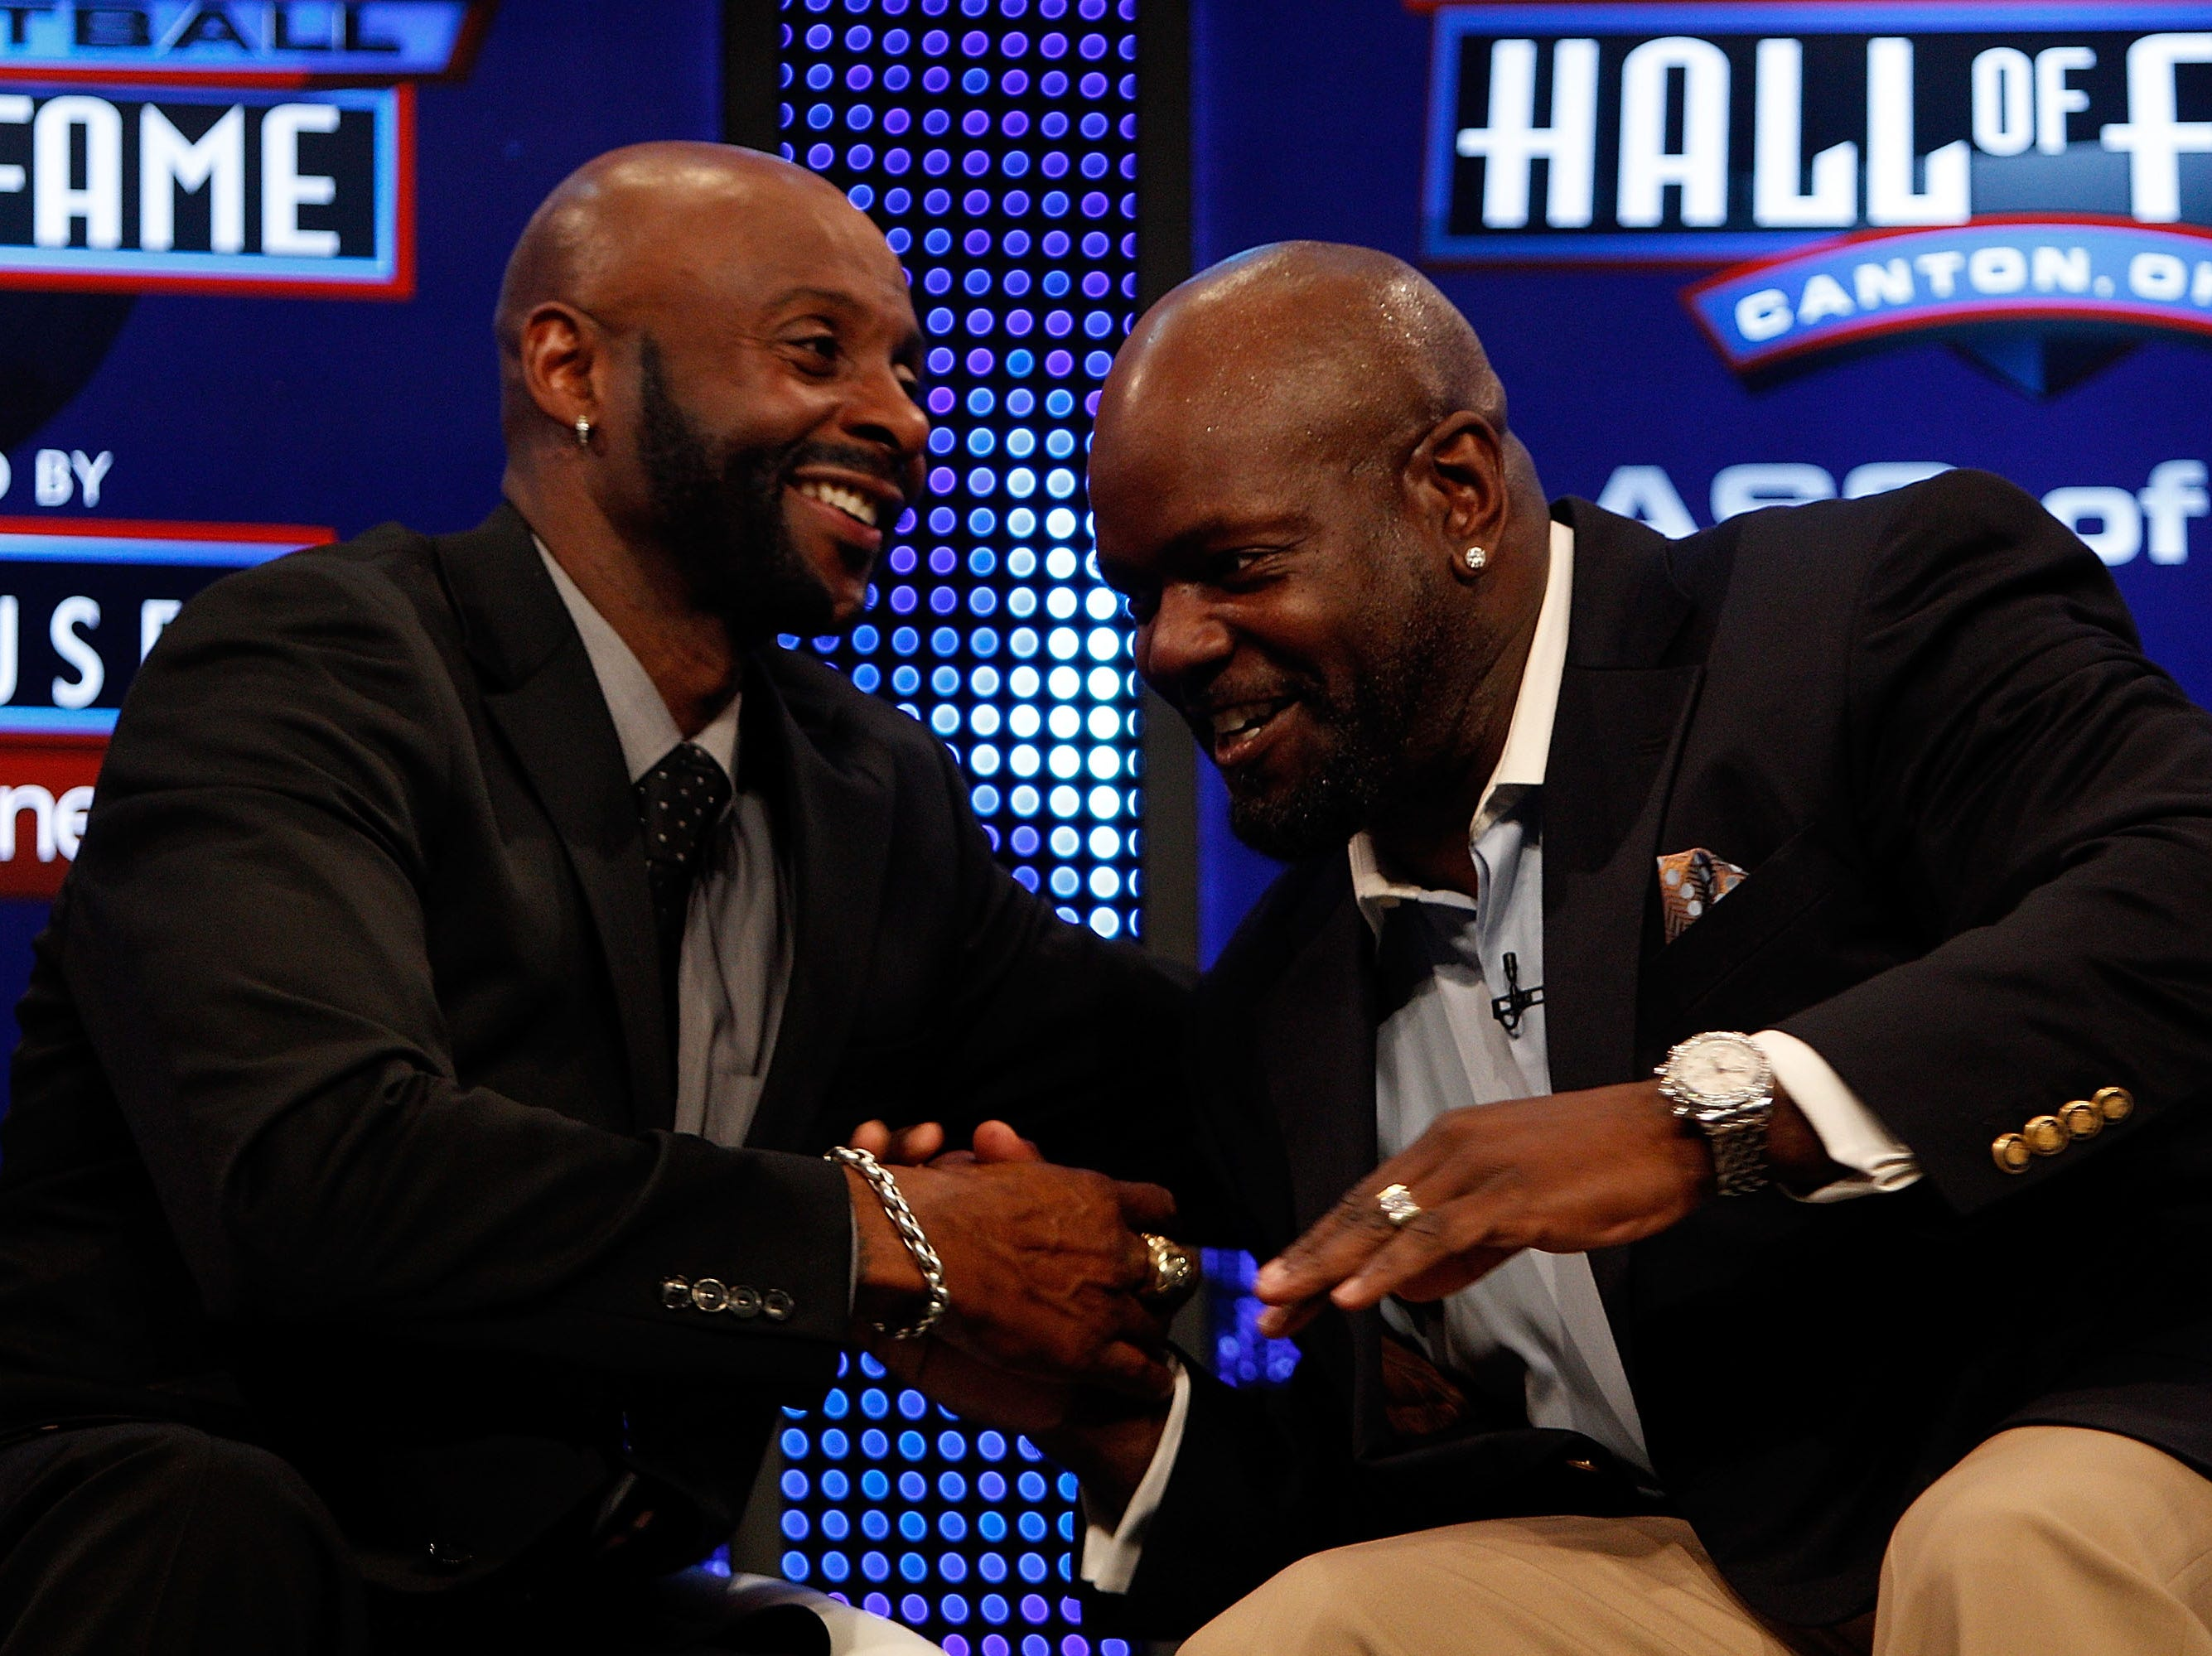 FORT LAUDERDALE, FL - FEBRUARY 06:  (L-R) Jerry Rice and Emmitt Smith talk on stage after they were both announced as two of the newest enshrinees into the Hall of Fame during the Pro Football Hall of Fame Class of 2010 Press Conference held at the Greater Ft. Lauderdale/Broward County Convention Center as part of media week for Super Bowl XLIV on February 6, 2010 in Fort Lauderdale, Florida.  (Photo by Chris Graythen/Getty Images)